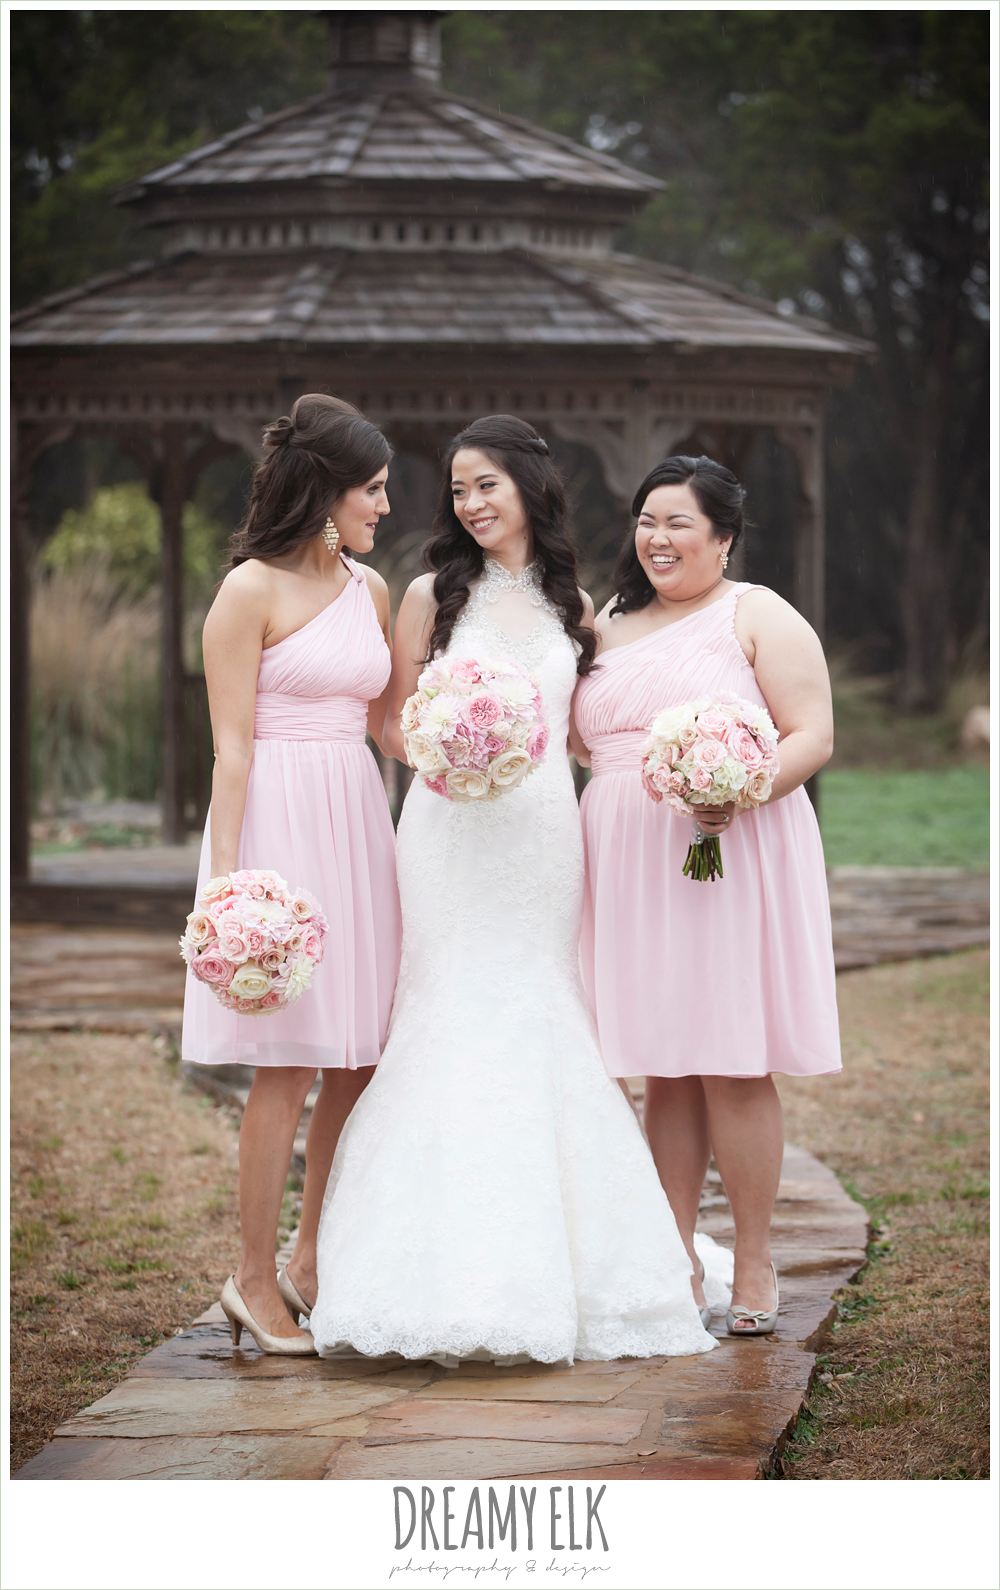 light pink bridesmaids dresses, foggy wedding day {dreamy elk photography and design}